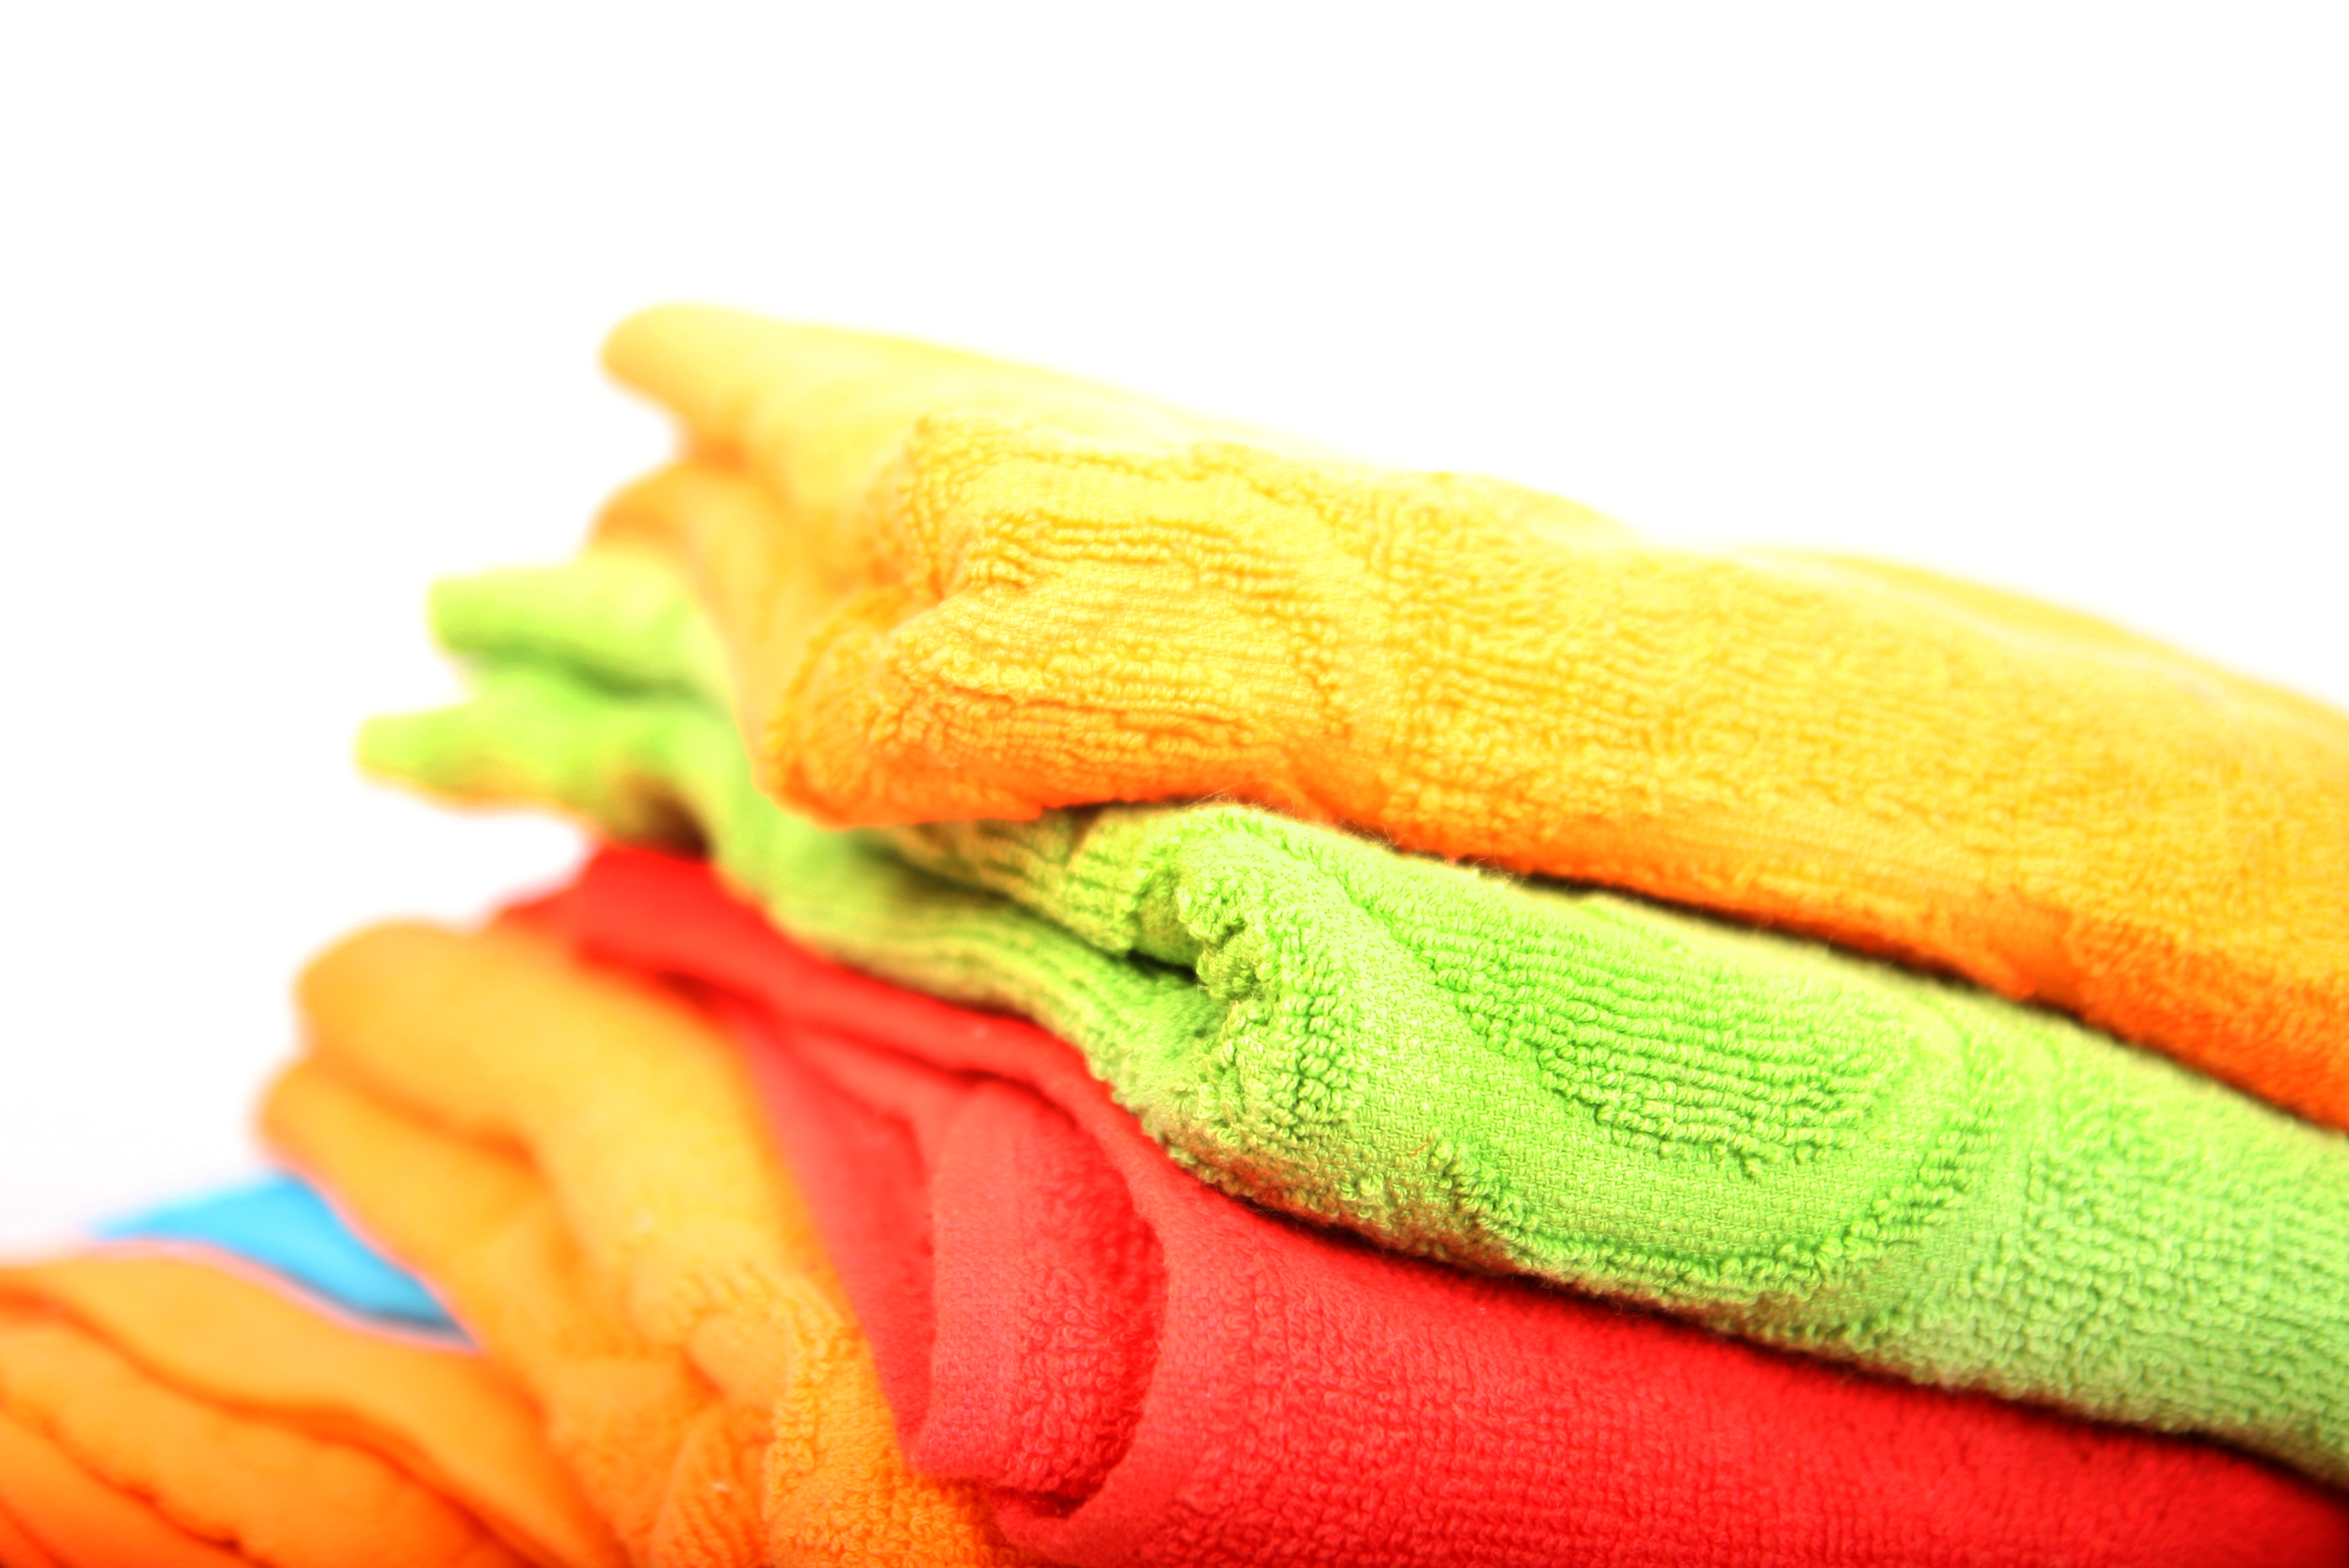 Relief woven border towels.